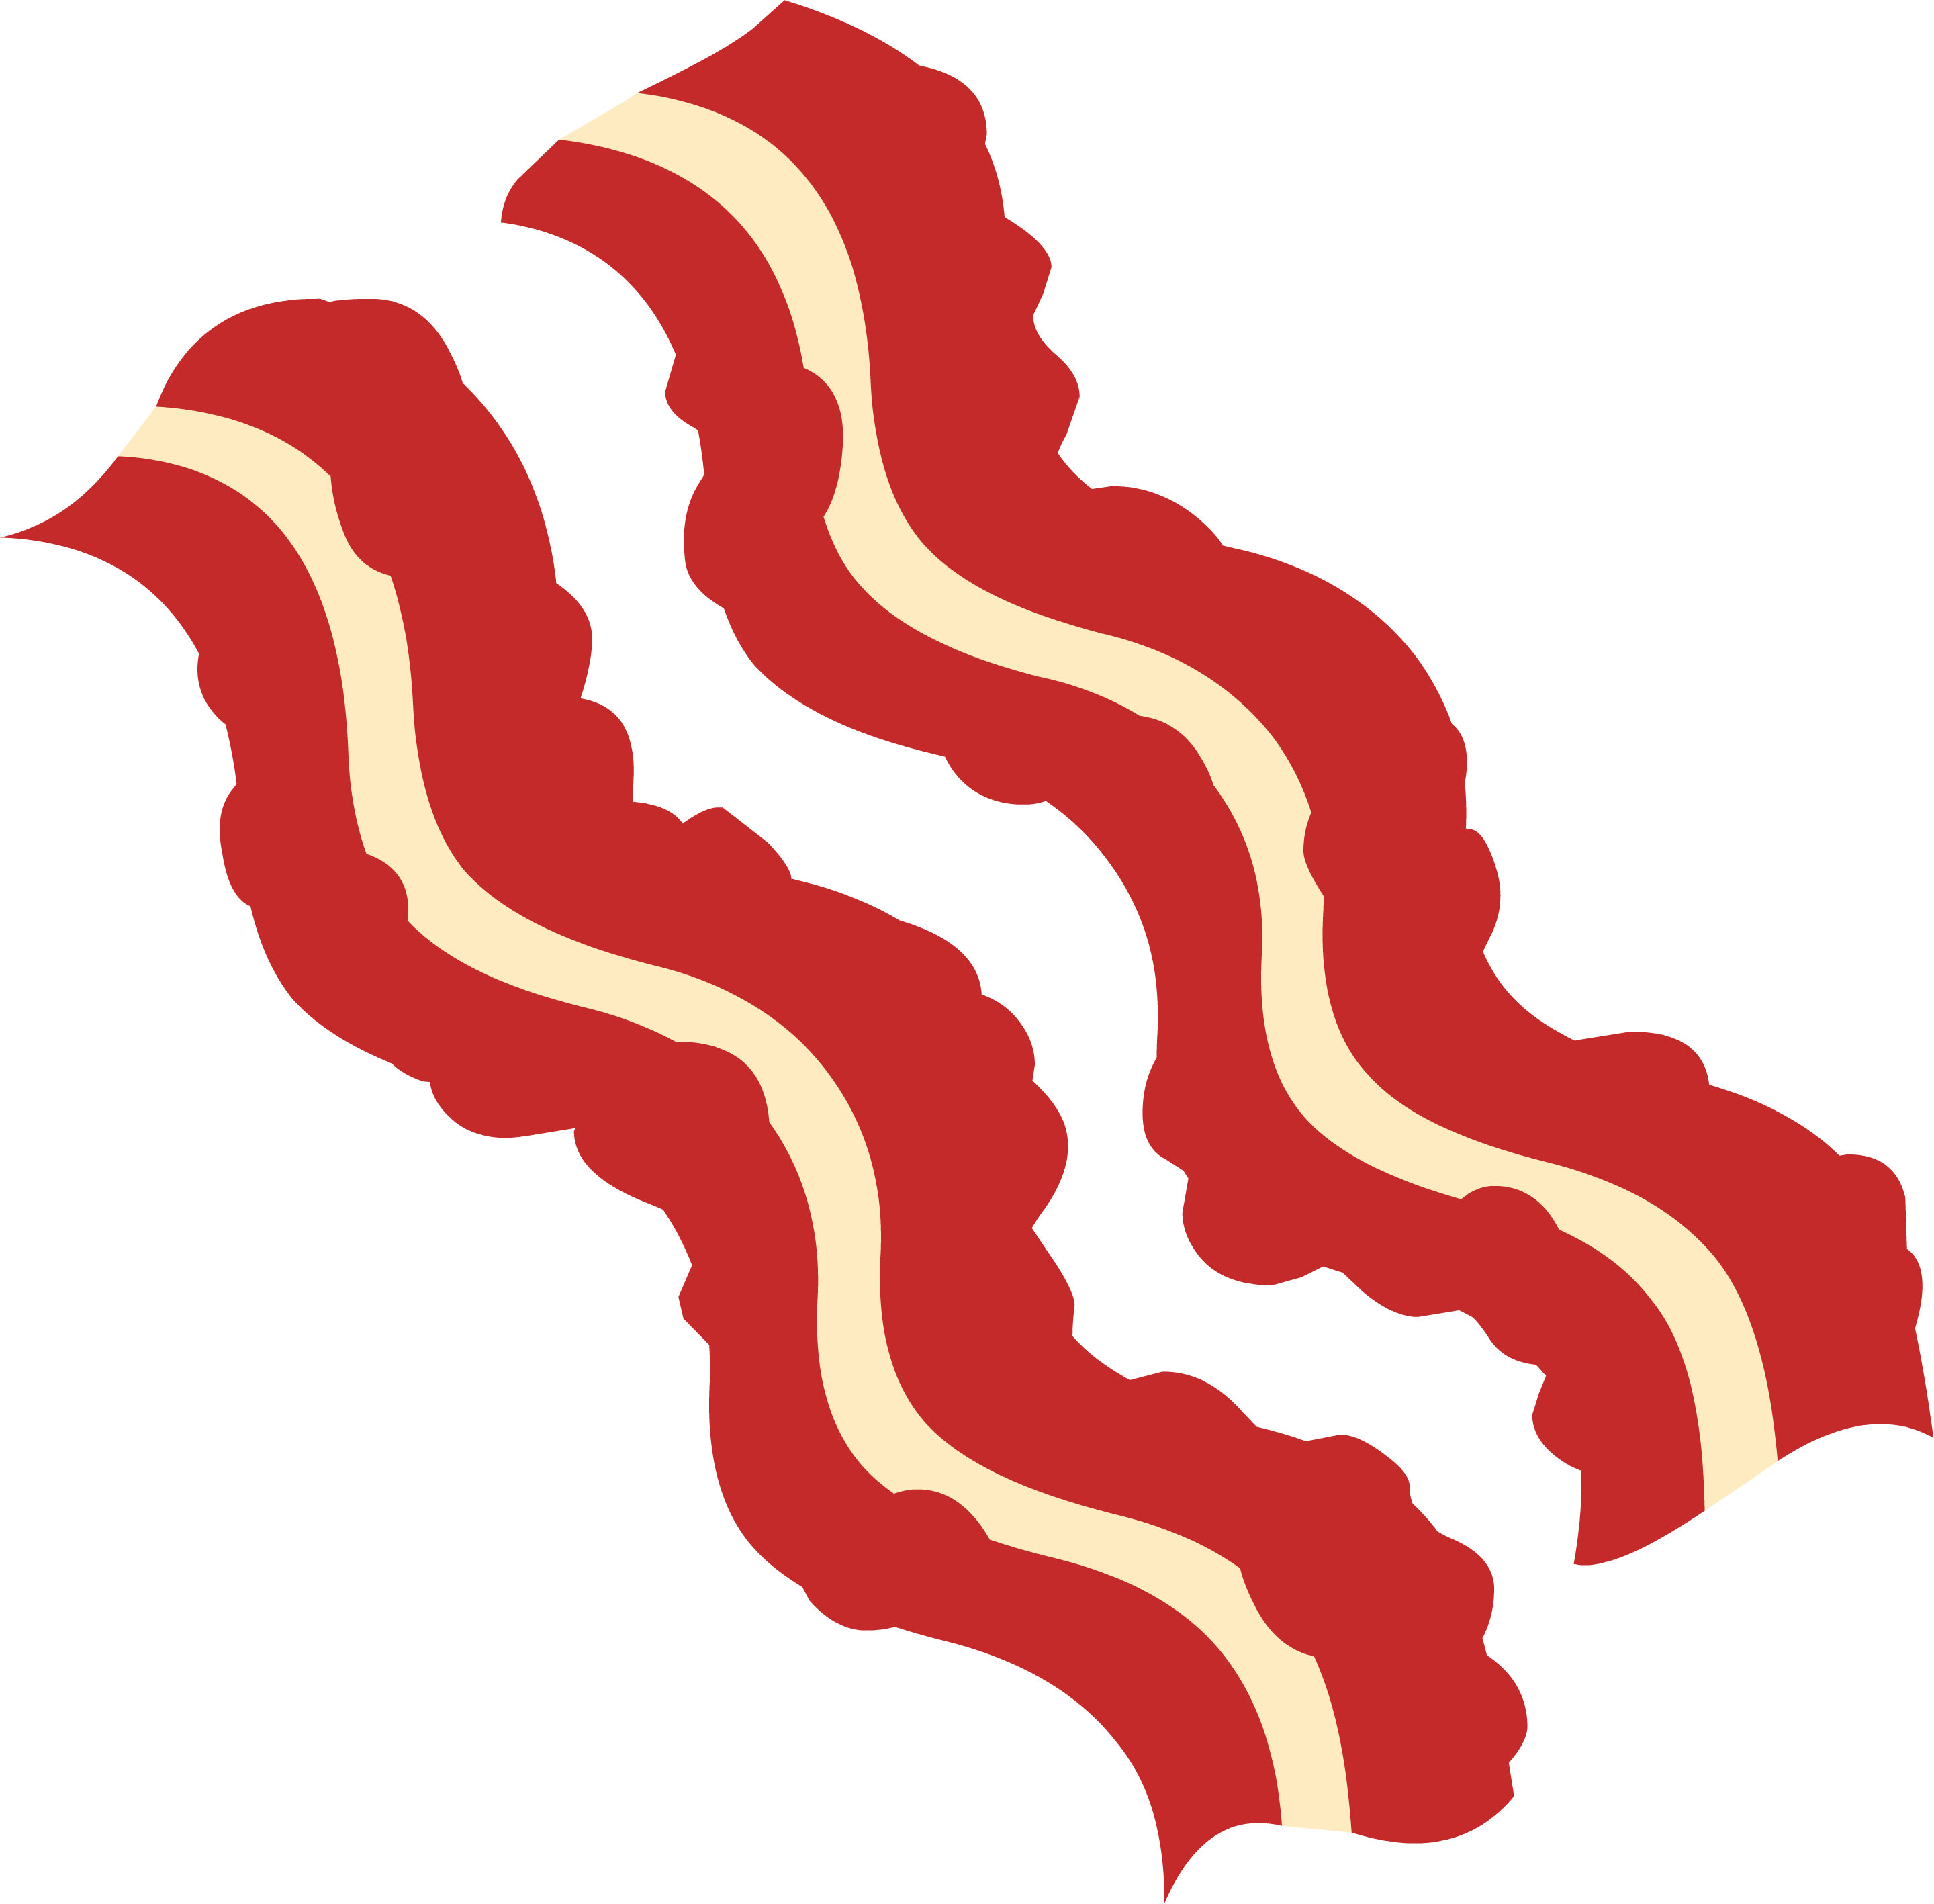 Bacon clipart animated  art Bacon Food DownloadClipart